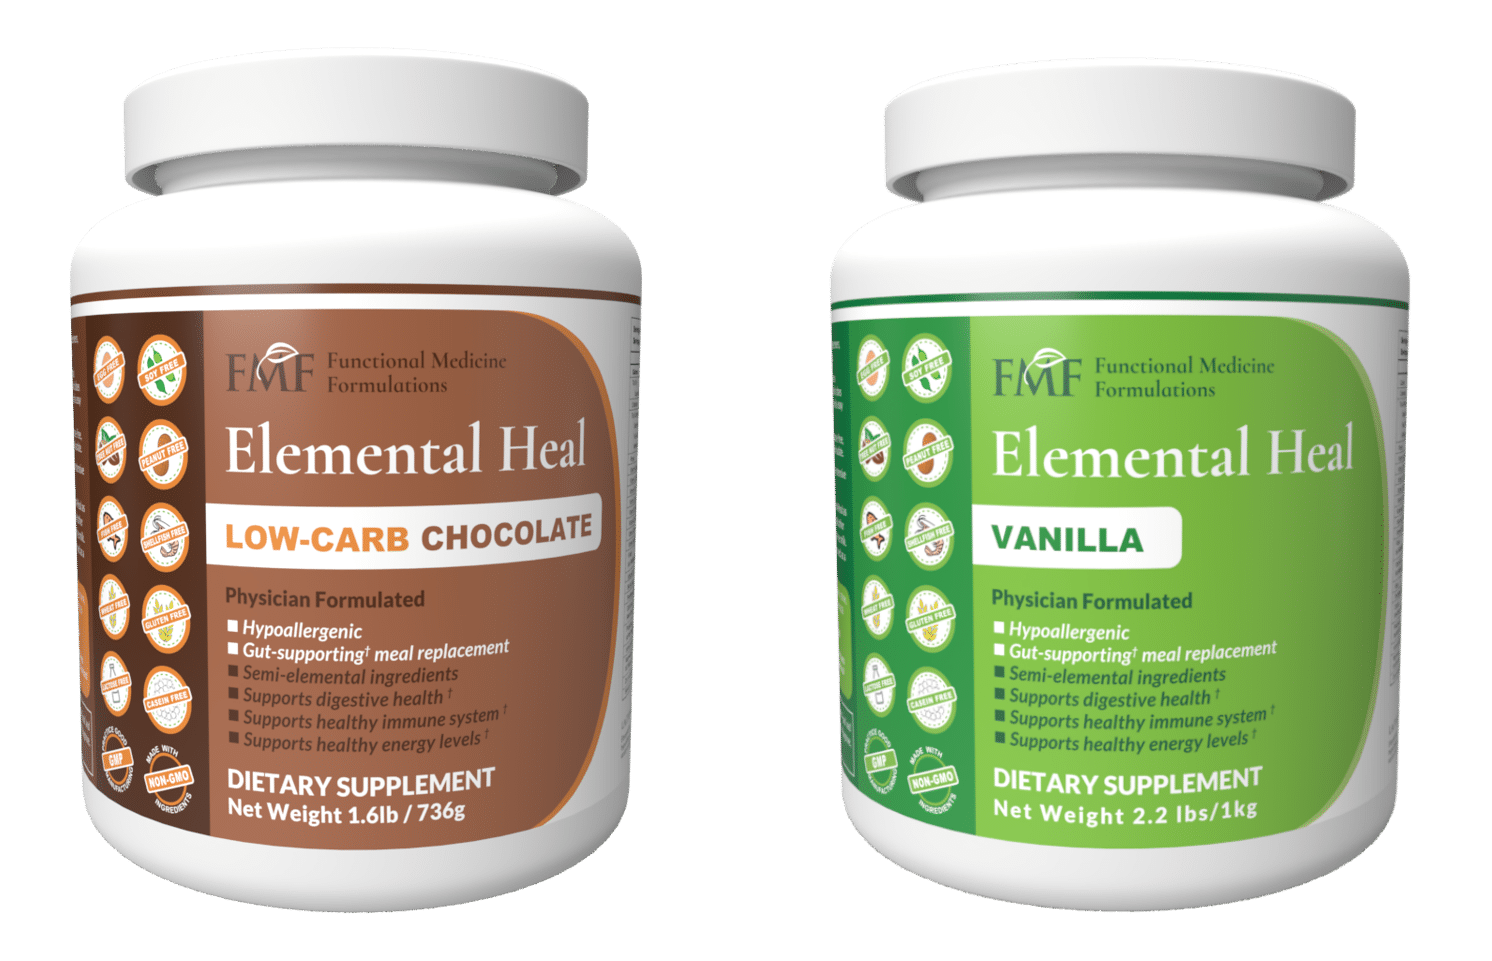 Two bottles of dietary supplements against a white background